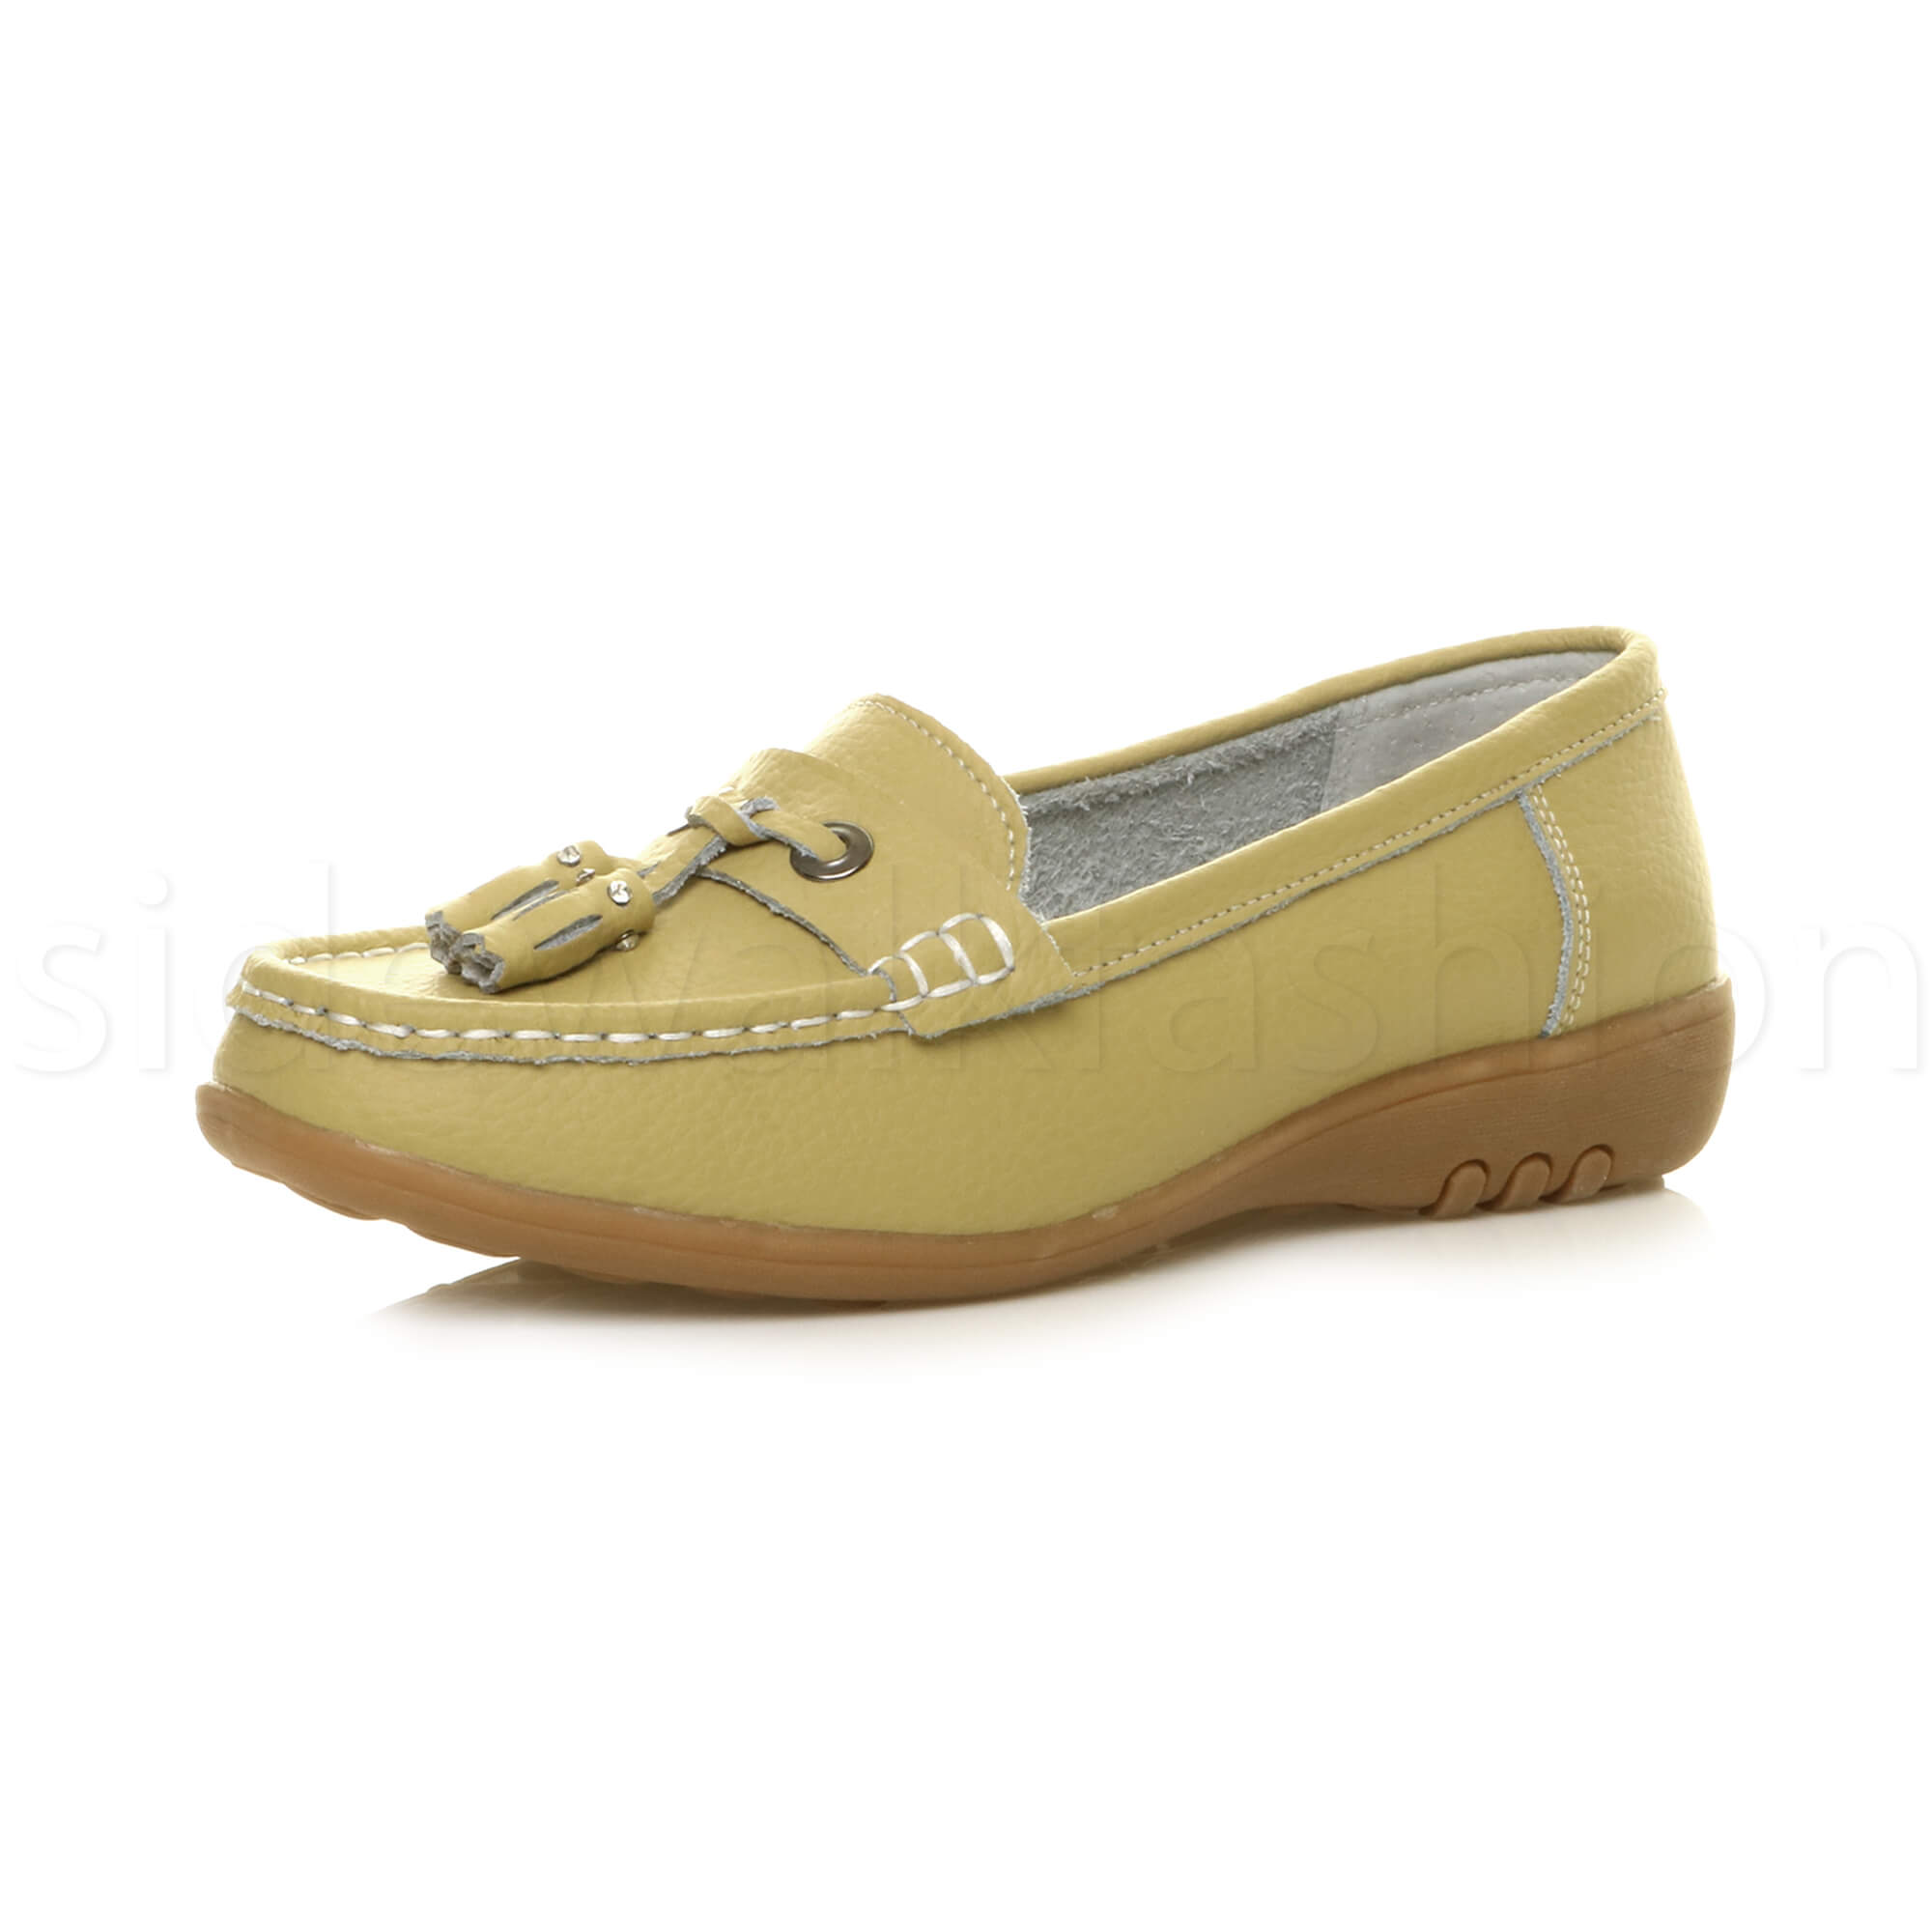 Shop for wedge loafers women shoes online at Target. Free shipping on purchases over $35 and save 5% every day with your Target REDcard.